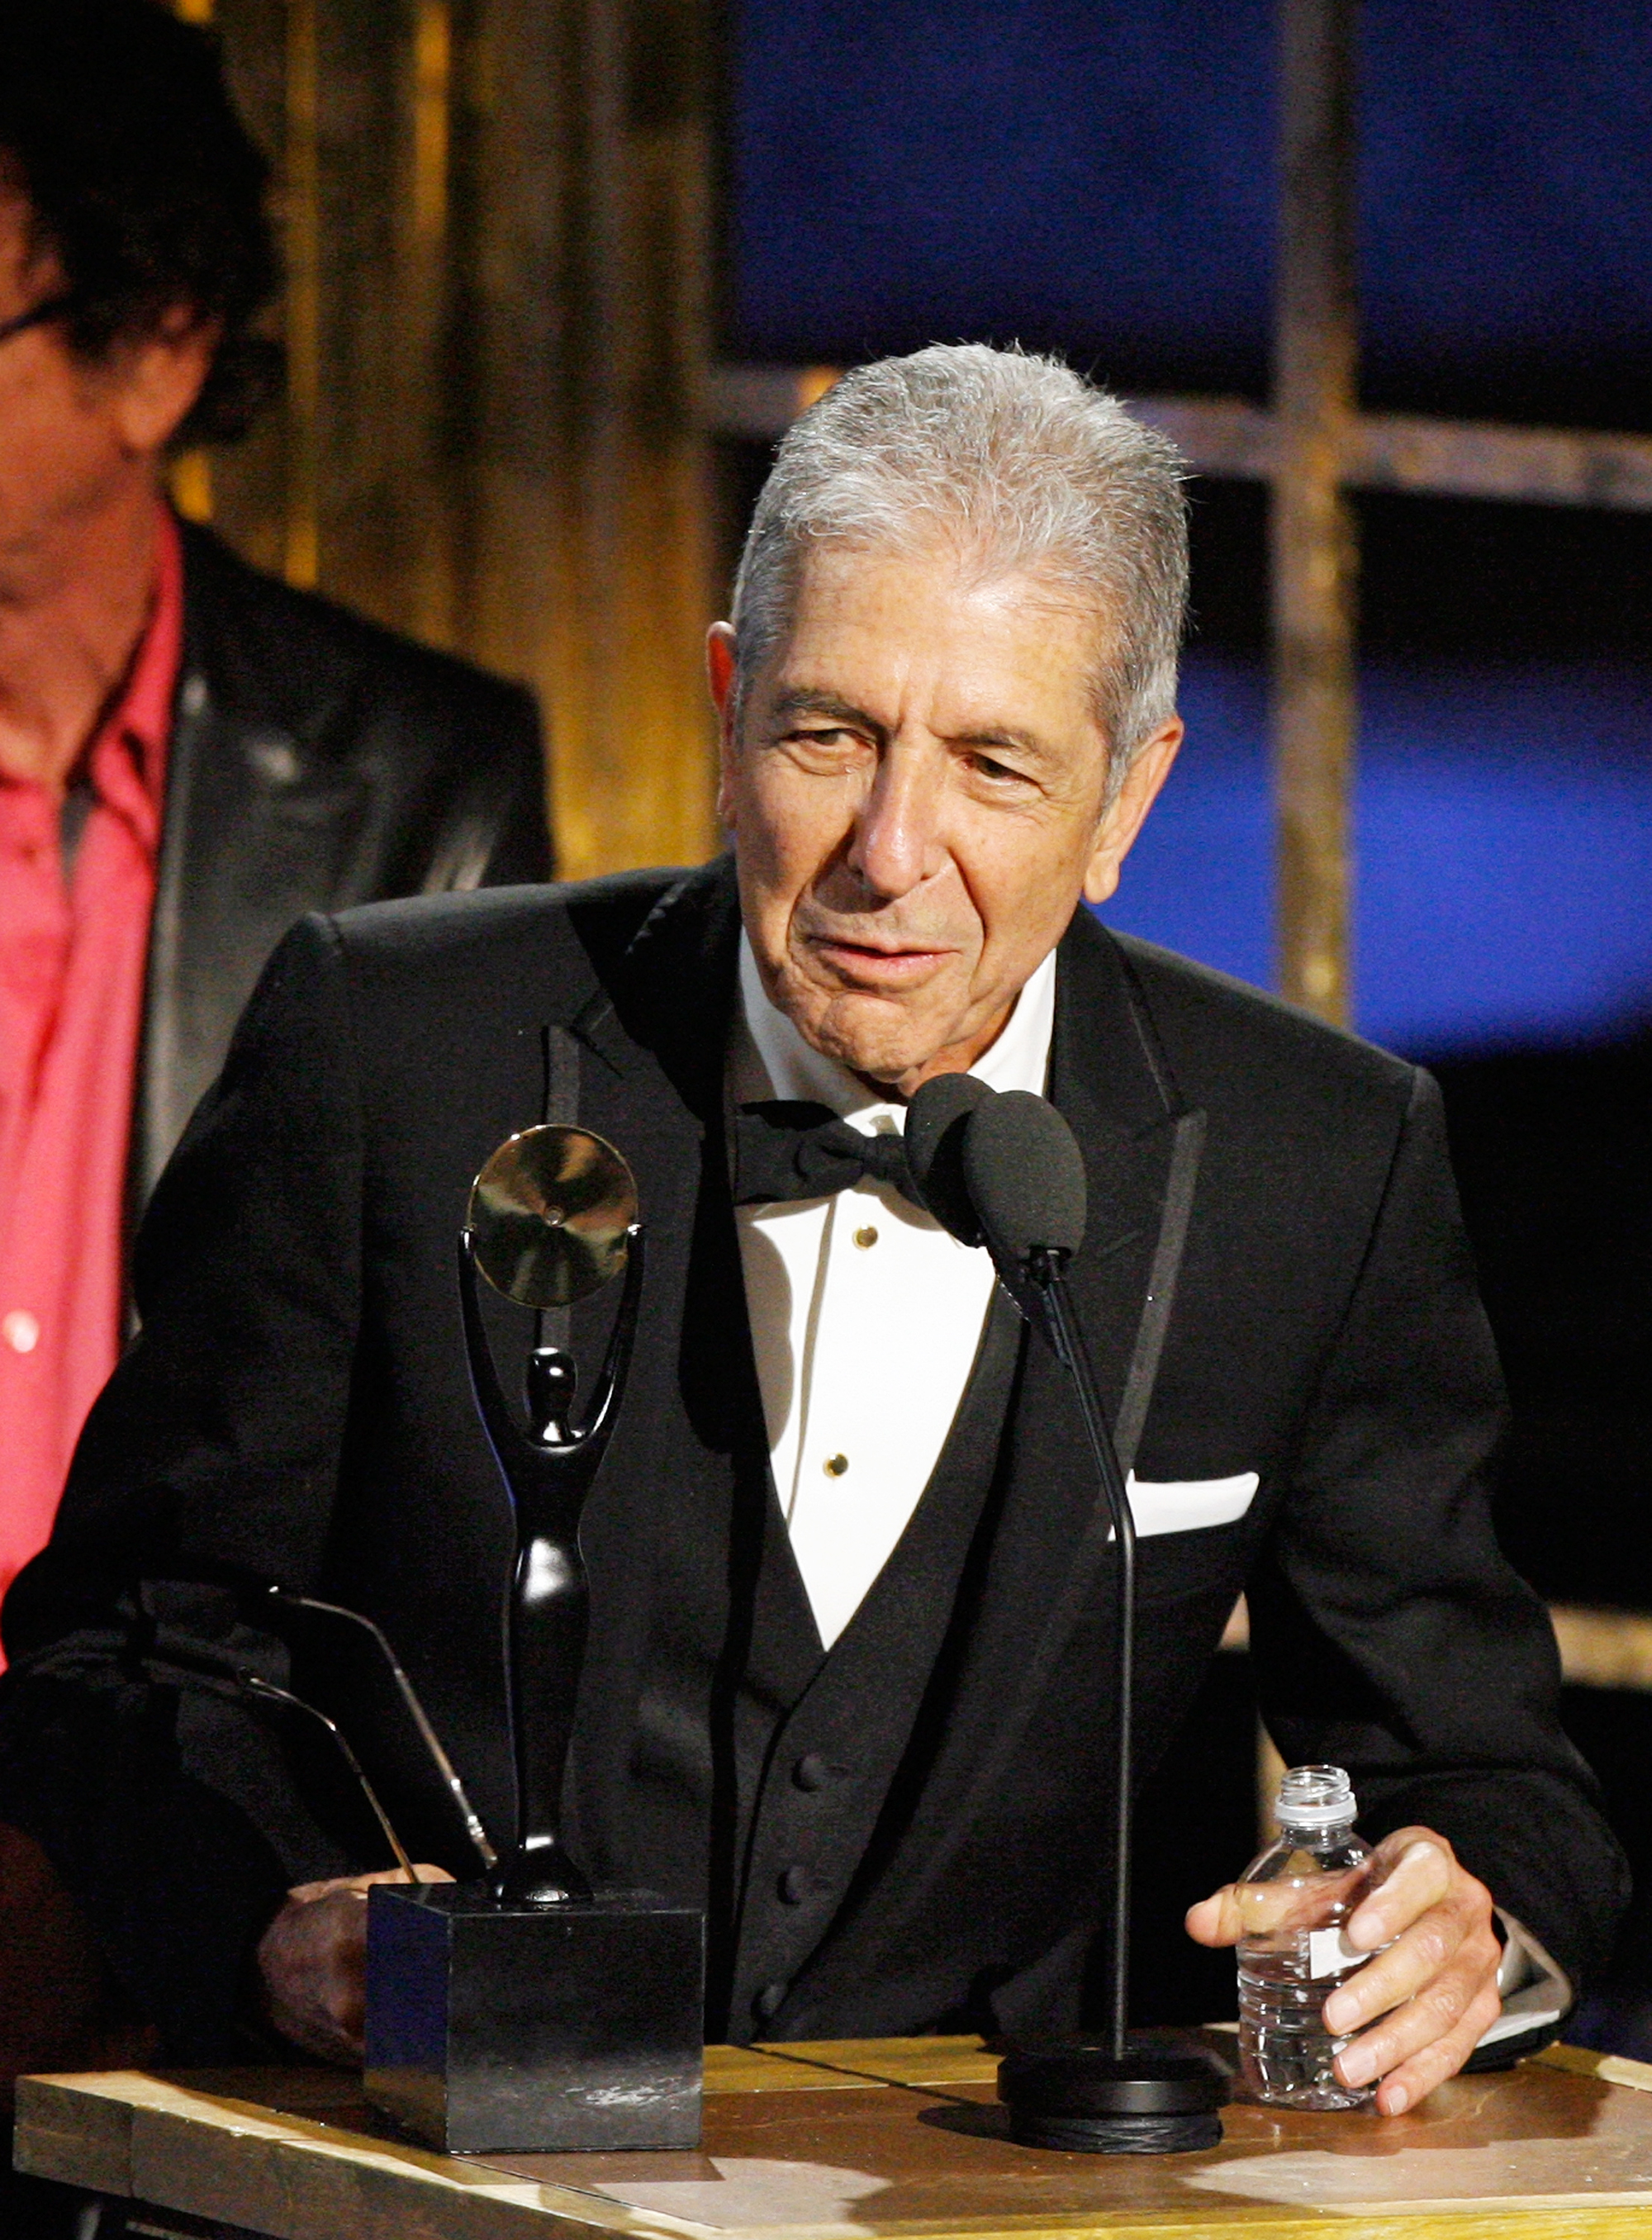 Leonard Cohen is inducted into the Rock and Roll Hall of Fame in New York City, on March 10, 2008.